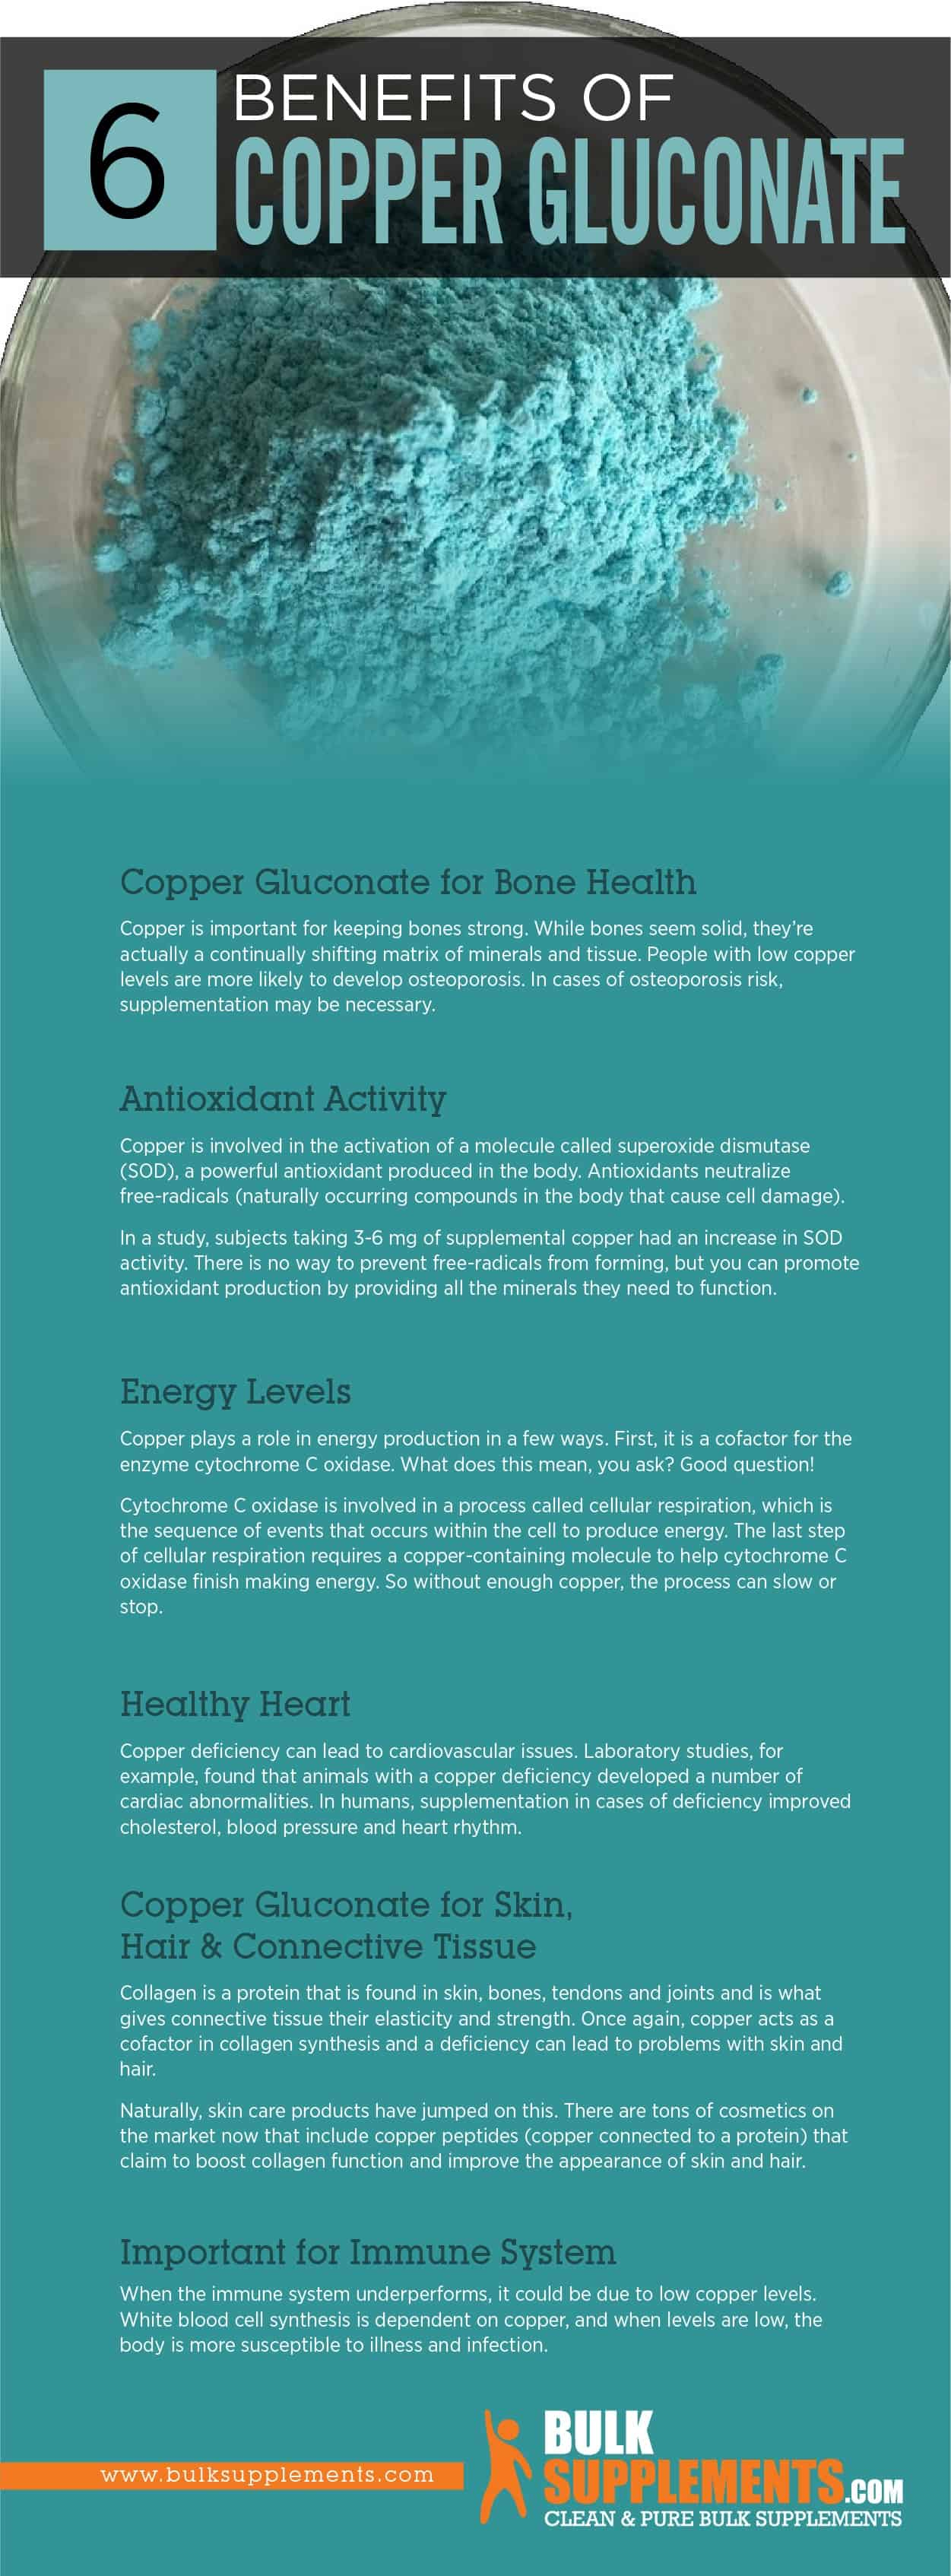 Copper Gluconate Benefits